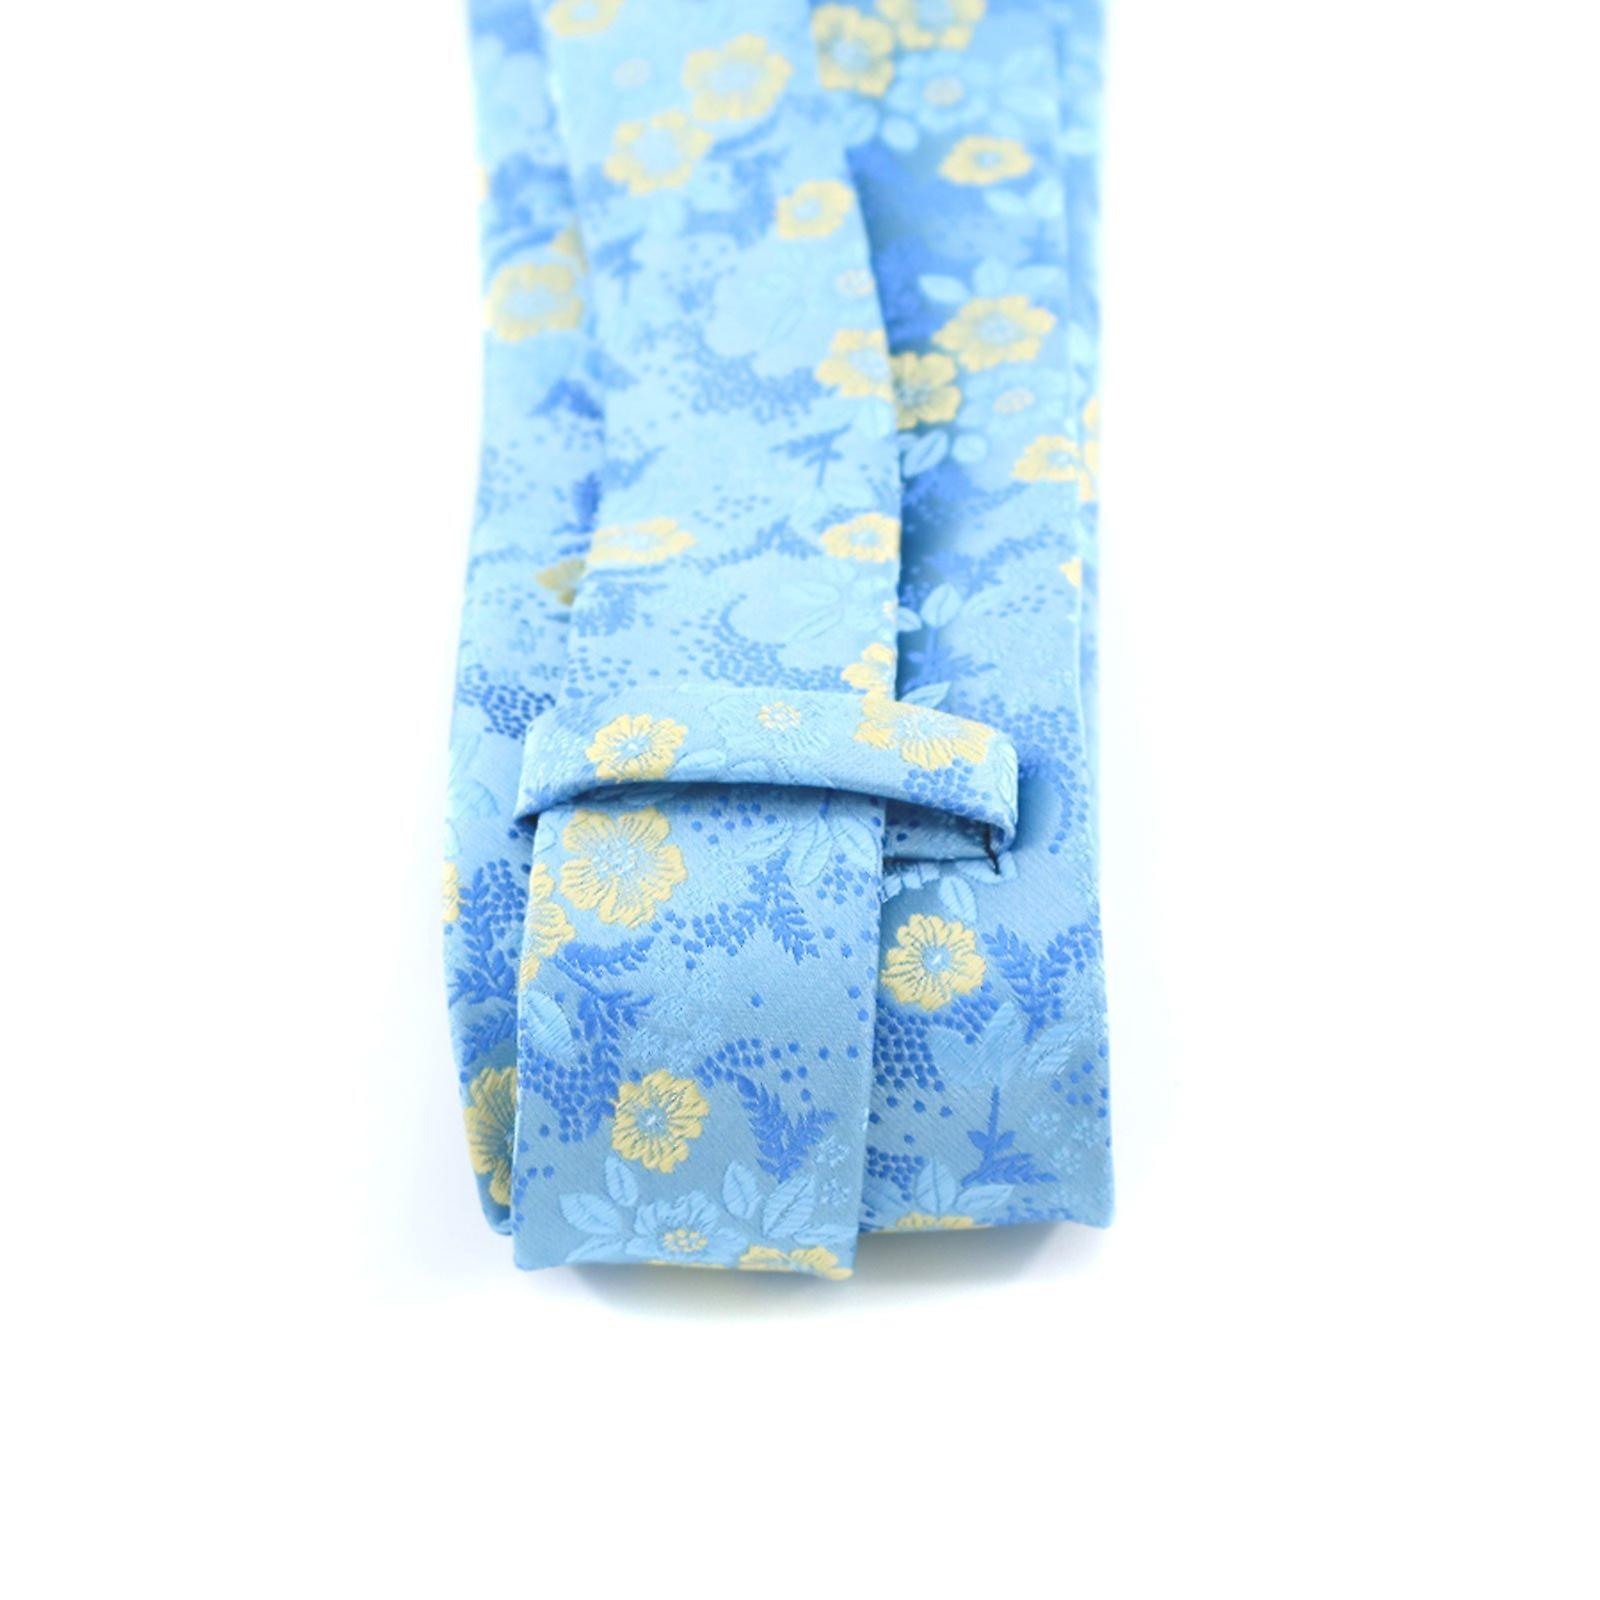 Turquoise blue & yellow floral necktie & pocket square